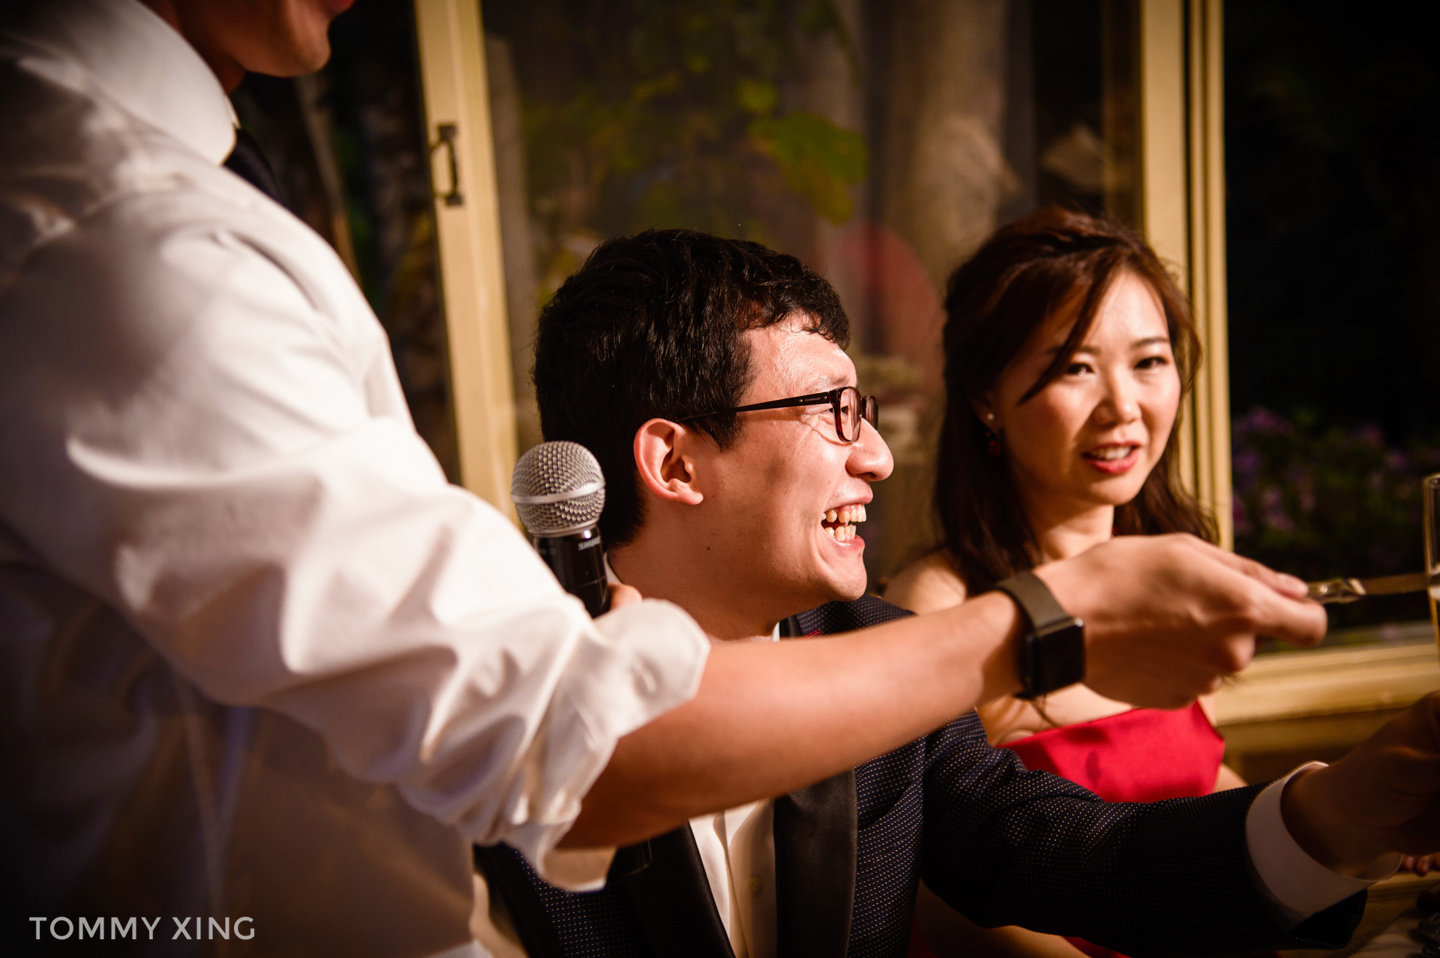 Los Angeles Wedding Photographer 洛杉矶婚礼婚纱摄影师 Tommy Xing-229.JPG